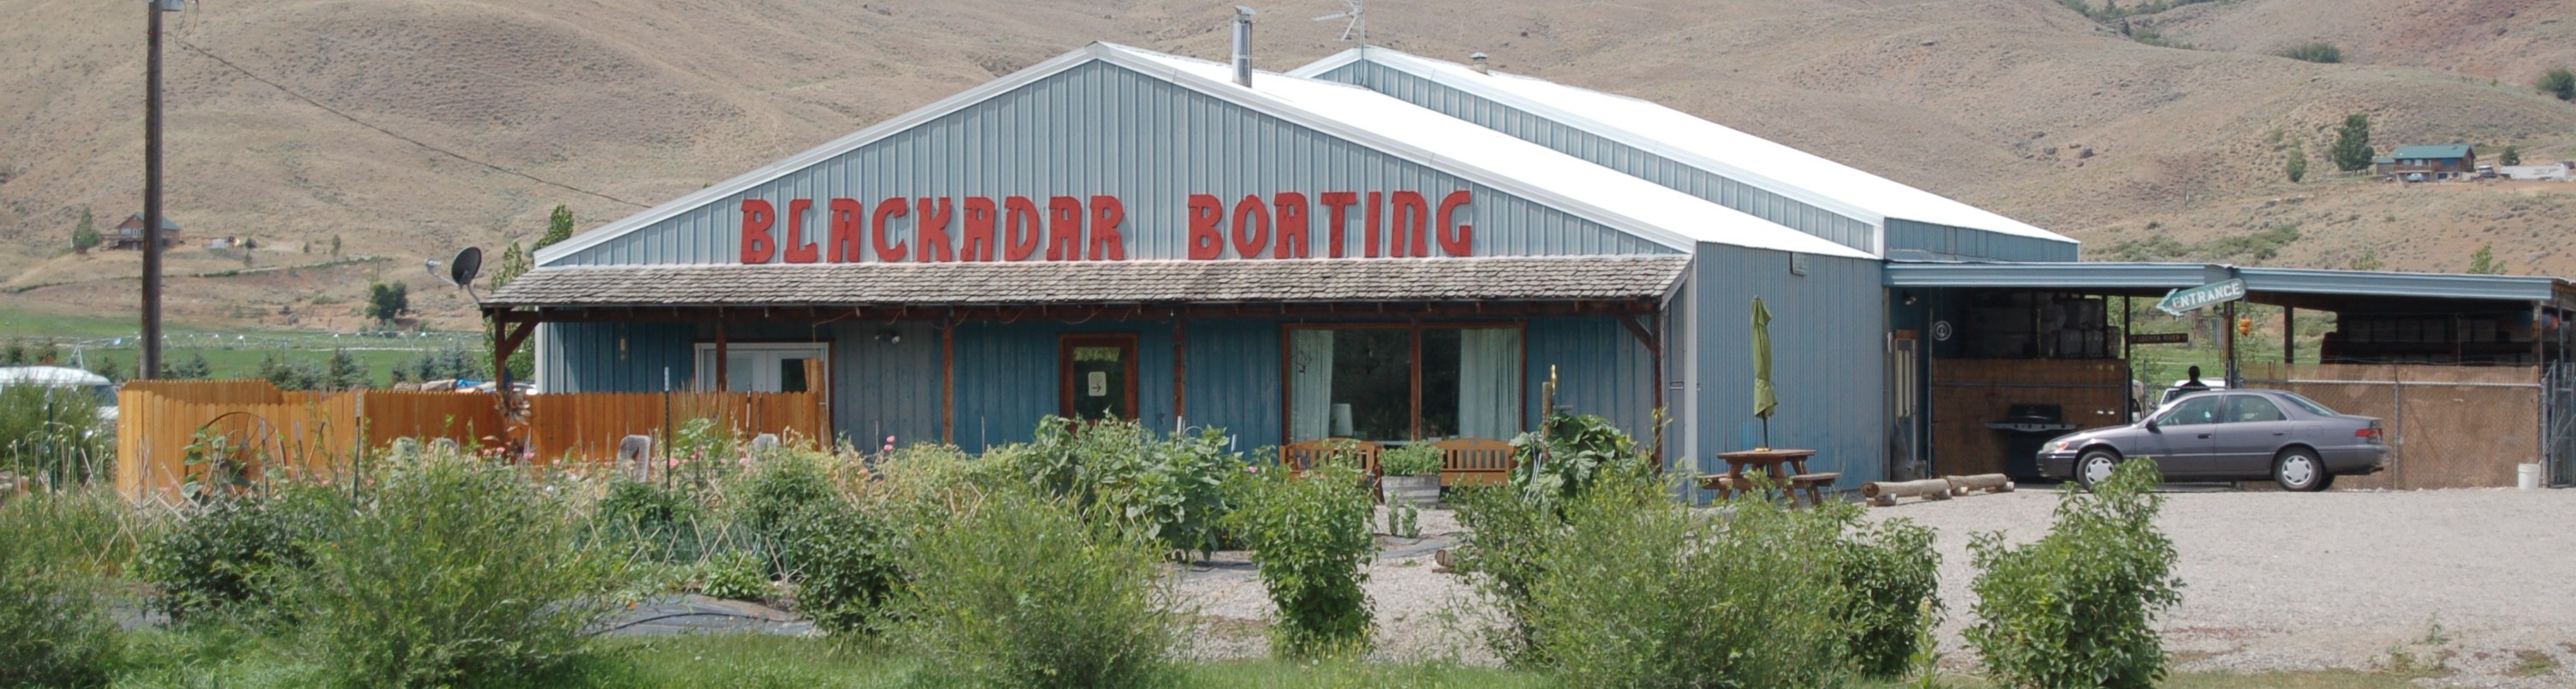 Blackadar Boating Shop on Hwy 93 North